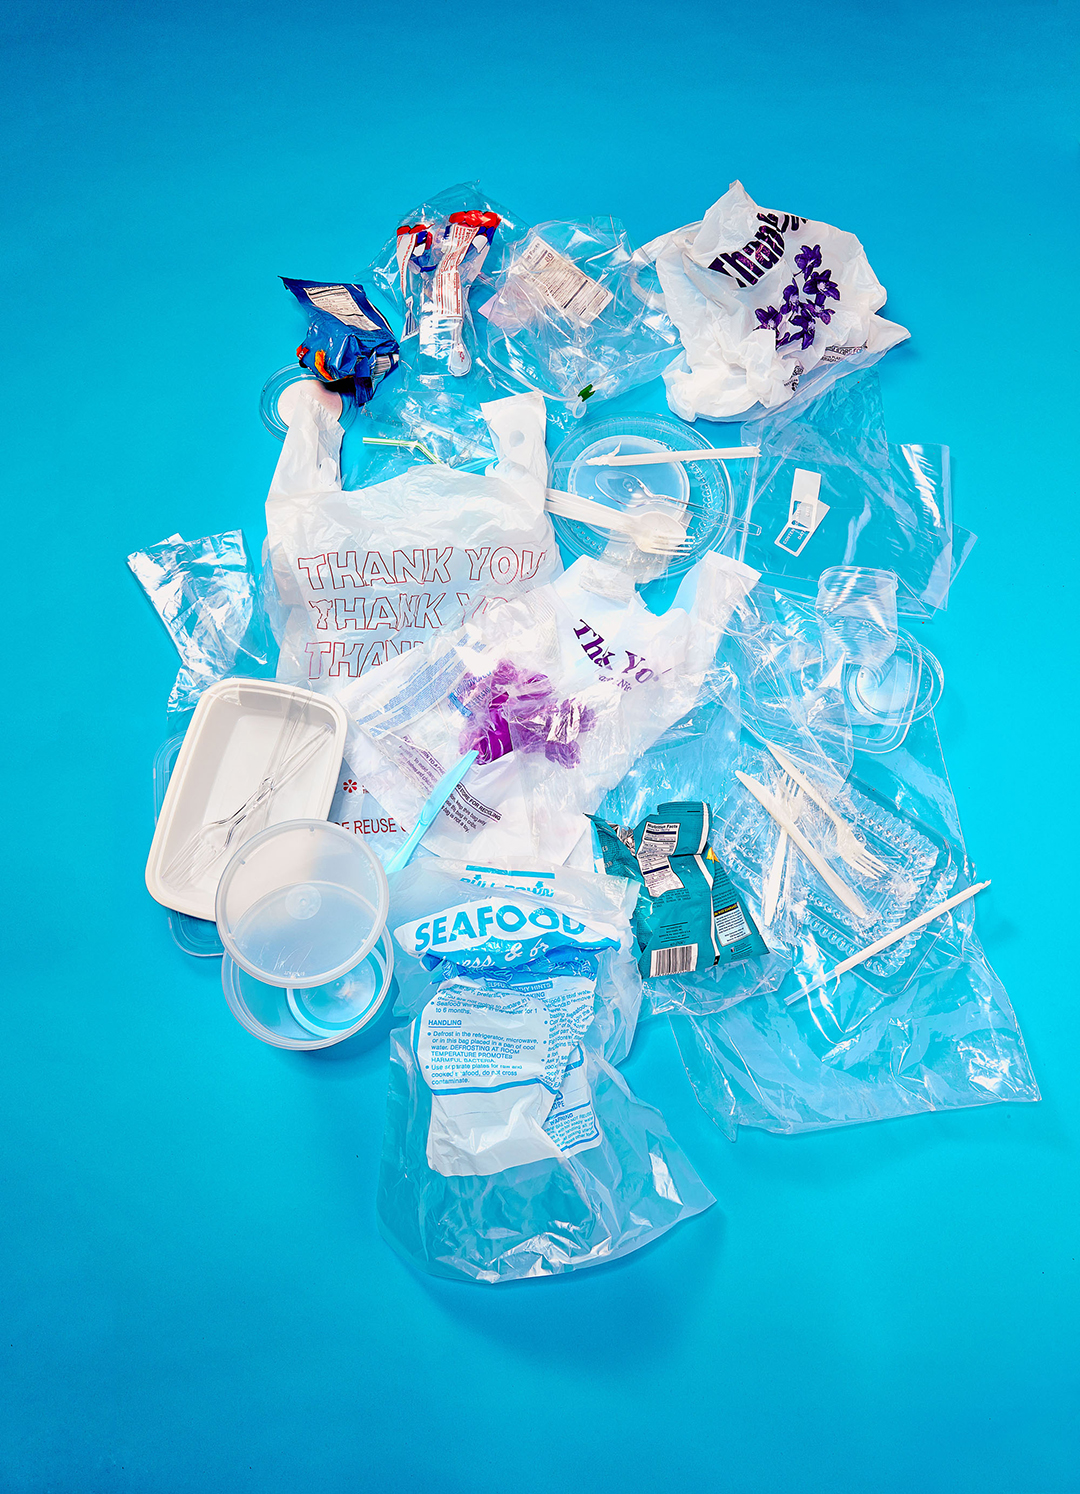 plastic bag waste on bright blue background